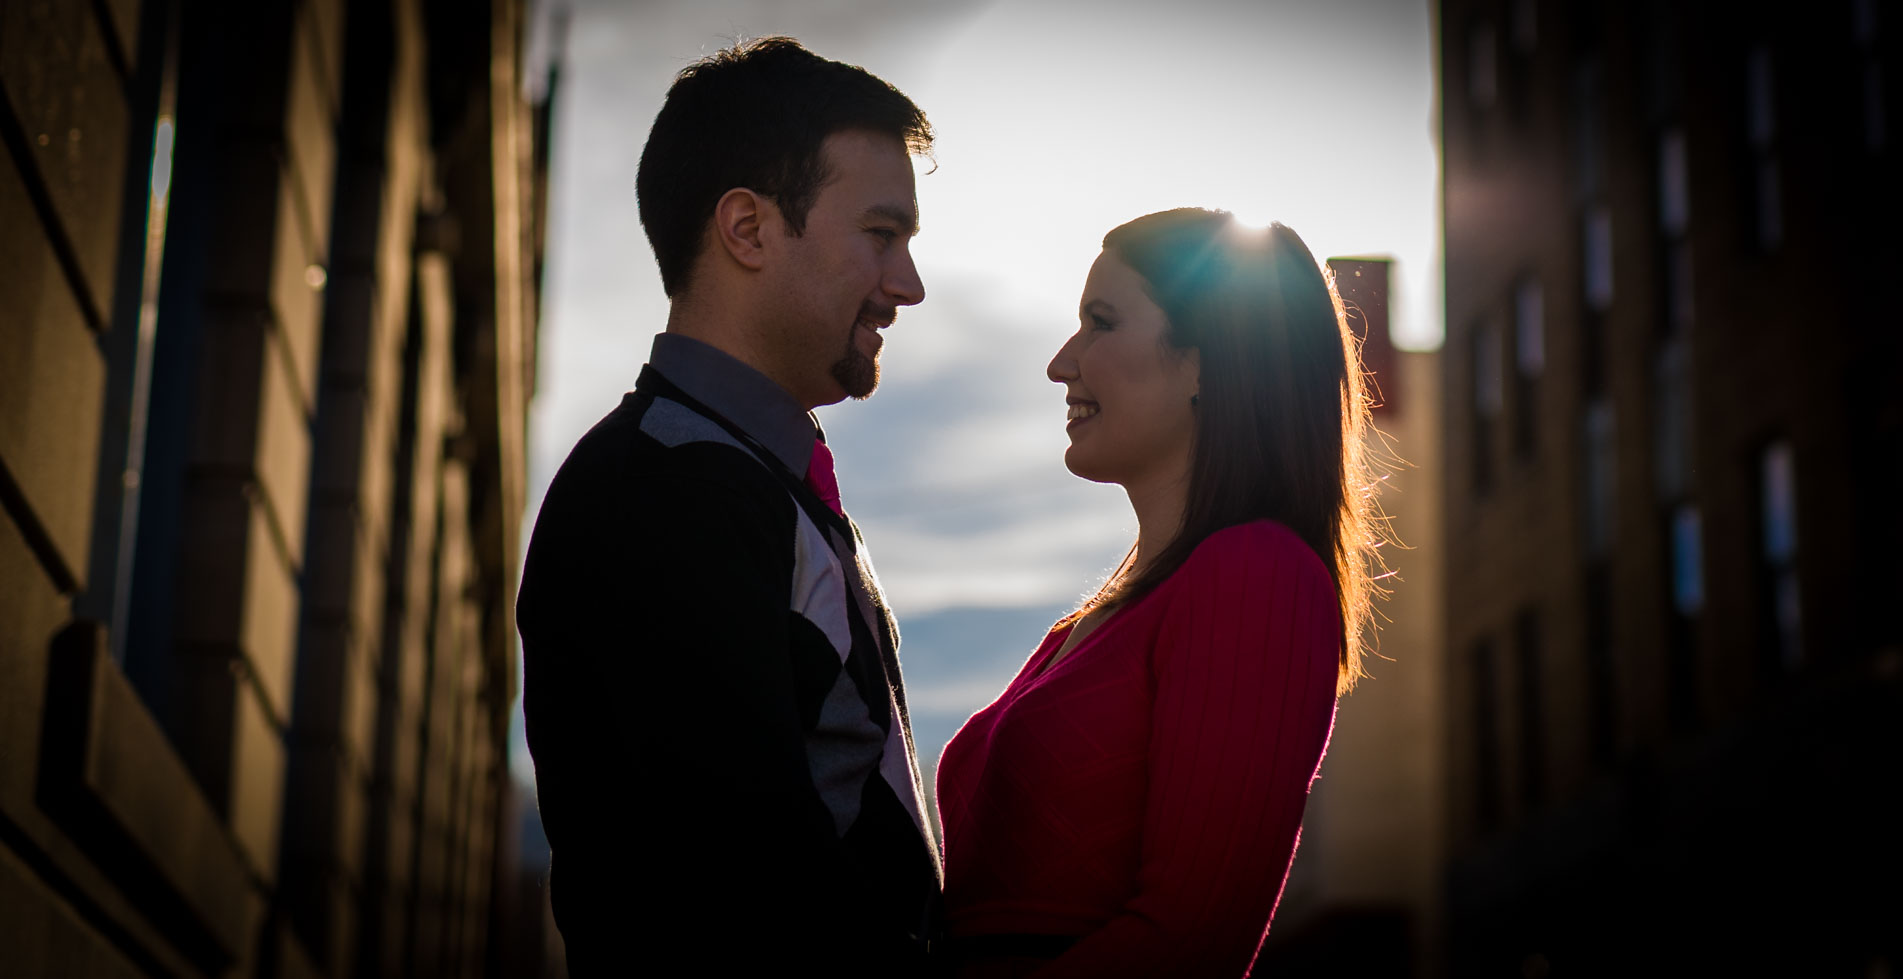 Check Out Erin & Mark's Engagement